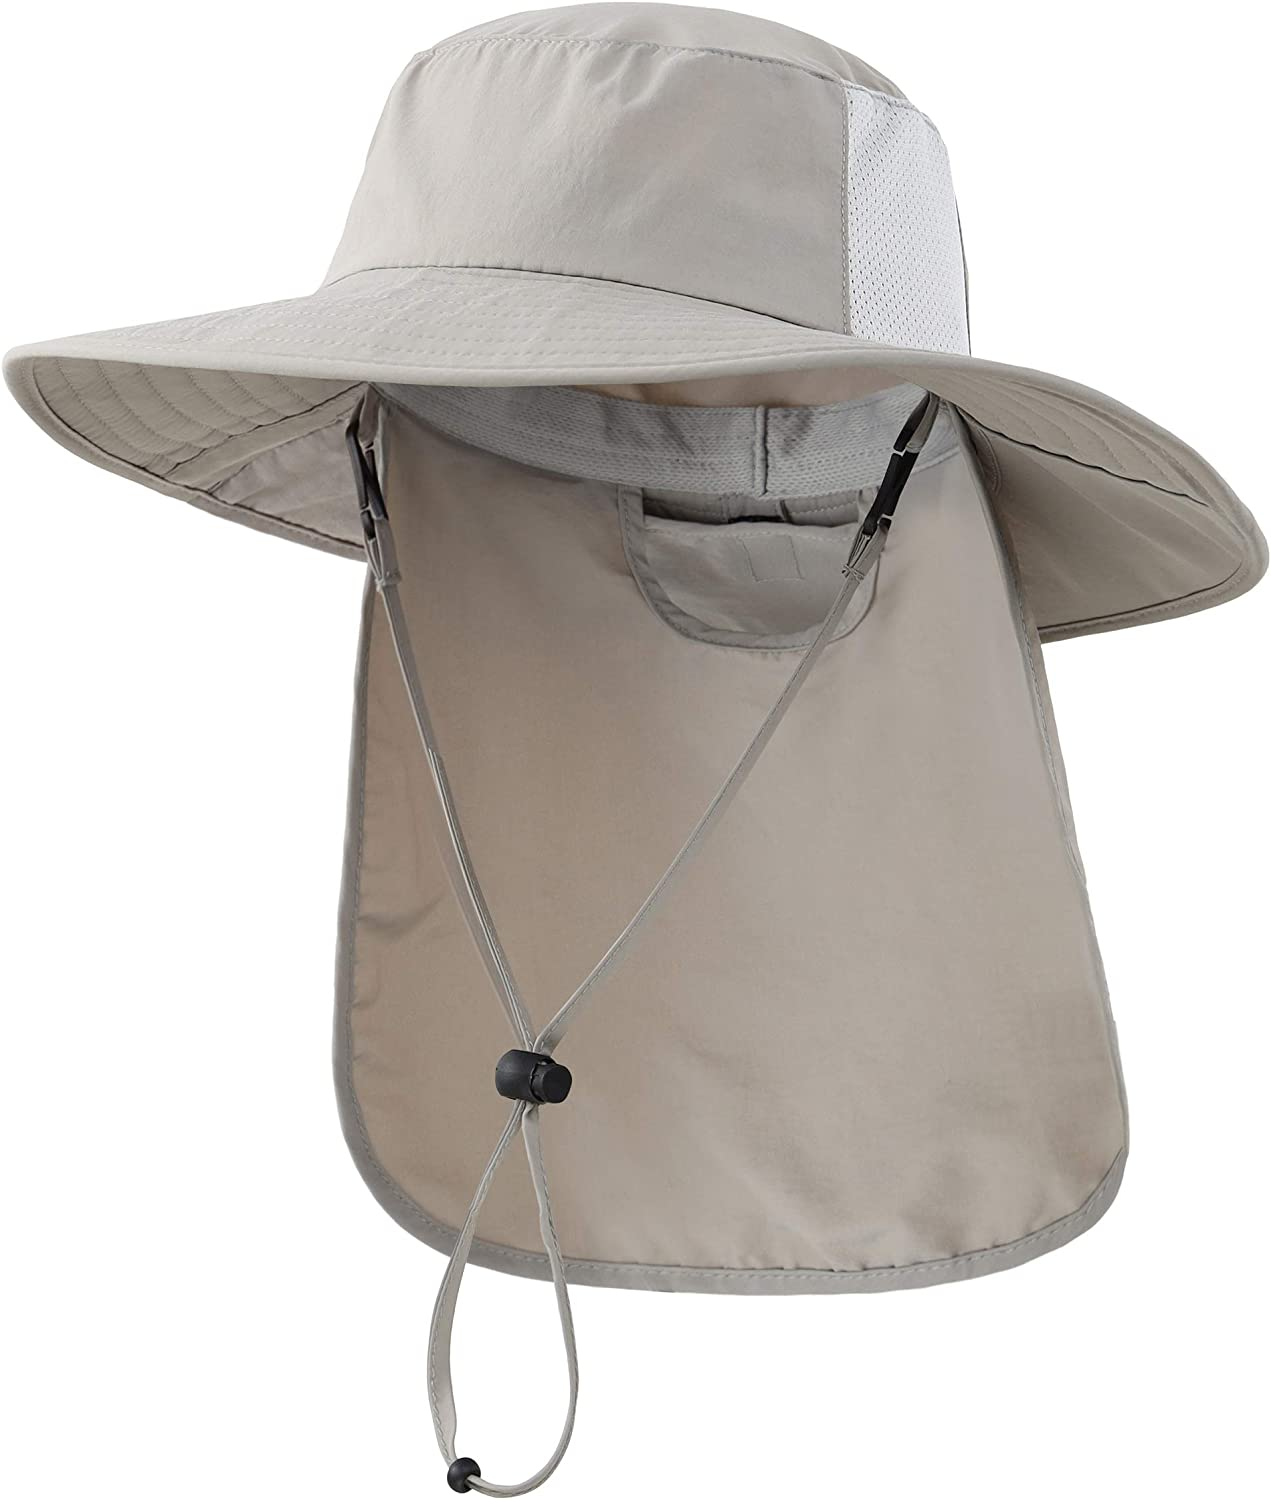 Connectyle Kids Flap Sun Hat with Free shipping on posting reviews Fashion Wide UPF Brim 50+ Beach Fi